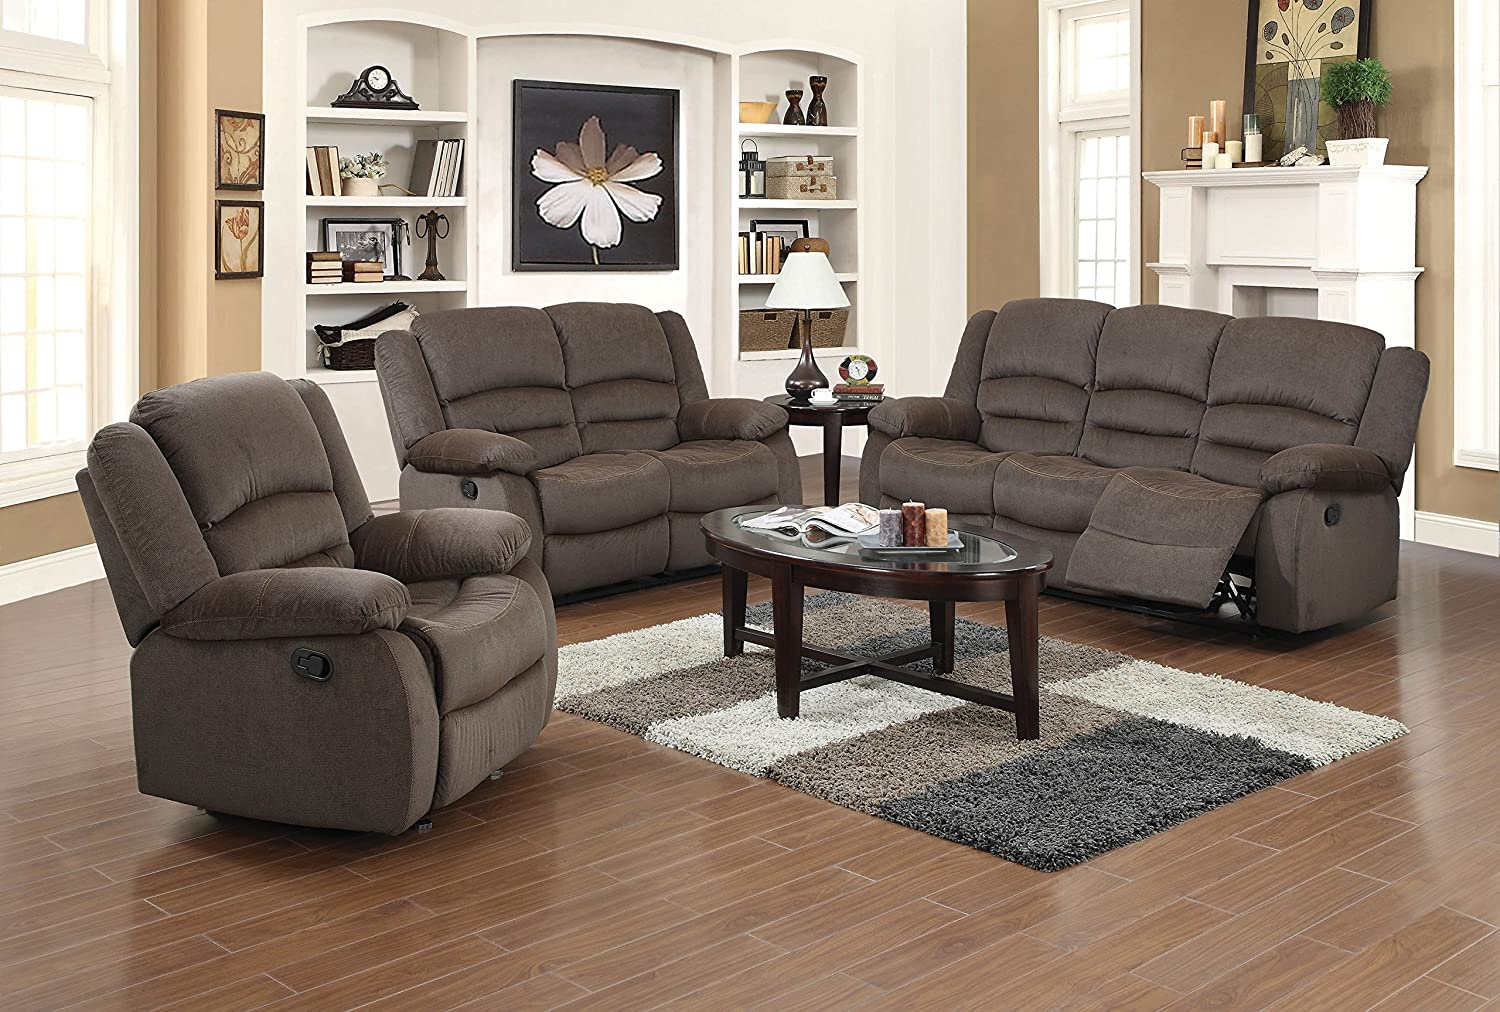 Perfect Amazon.com: US Pride Furniture 3 Piece Light Brown Fabric Reclining Sofa,  Chair U0026 Loveseat Set: Kitchen U0026 Dining